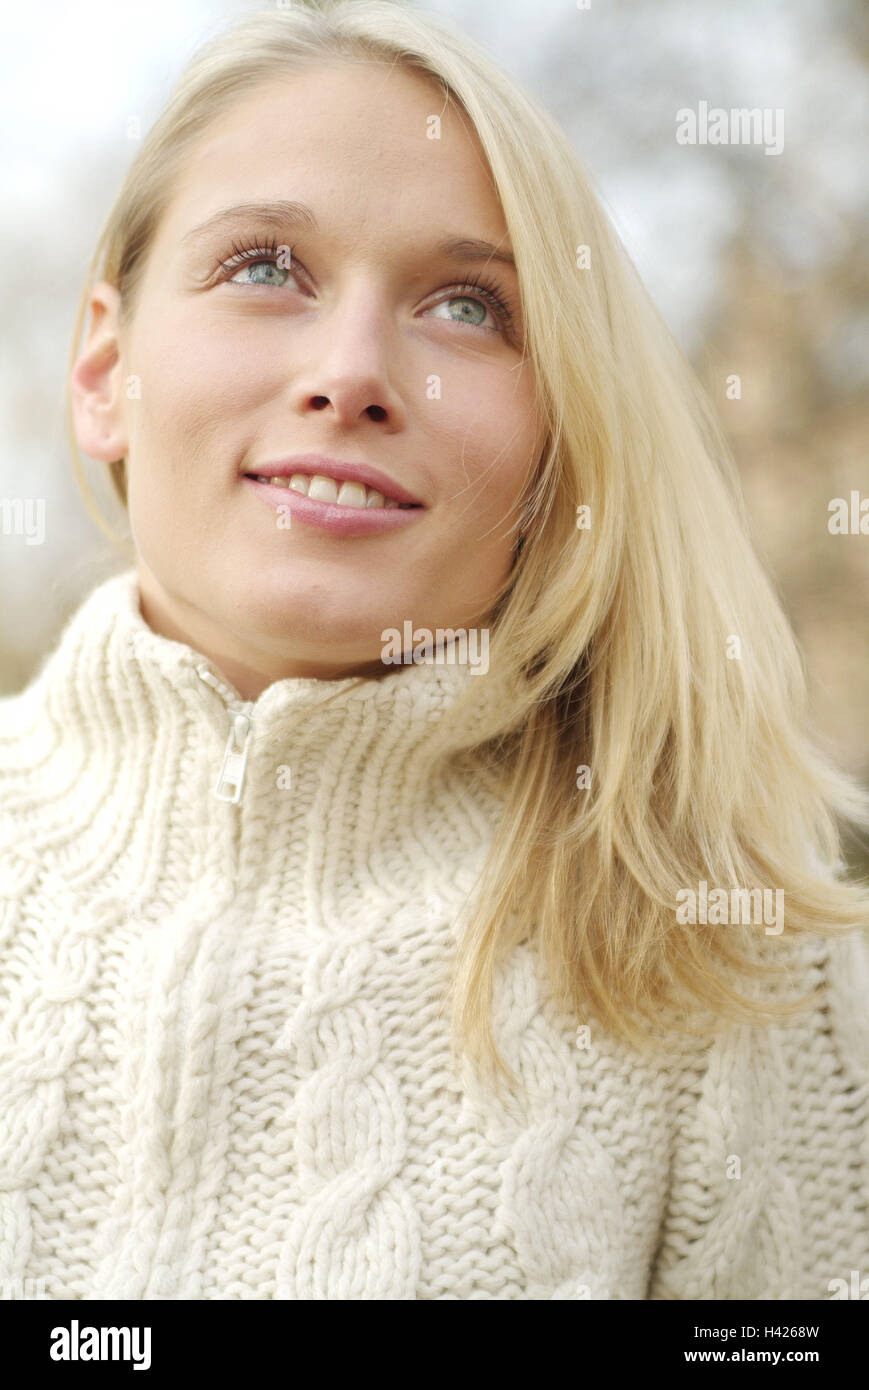 Woman, smile young, blond, portrait, leisure time, 23 years, blue eyes, long-haired, knitted pullover, pullover, - Stock Image